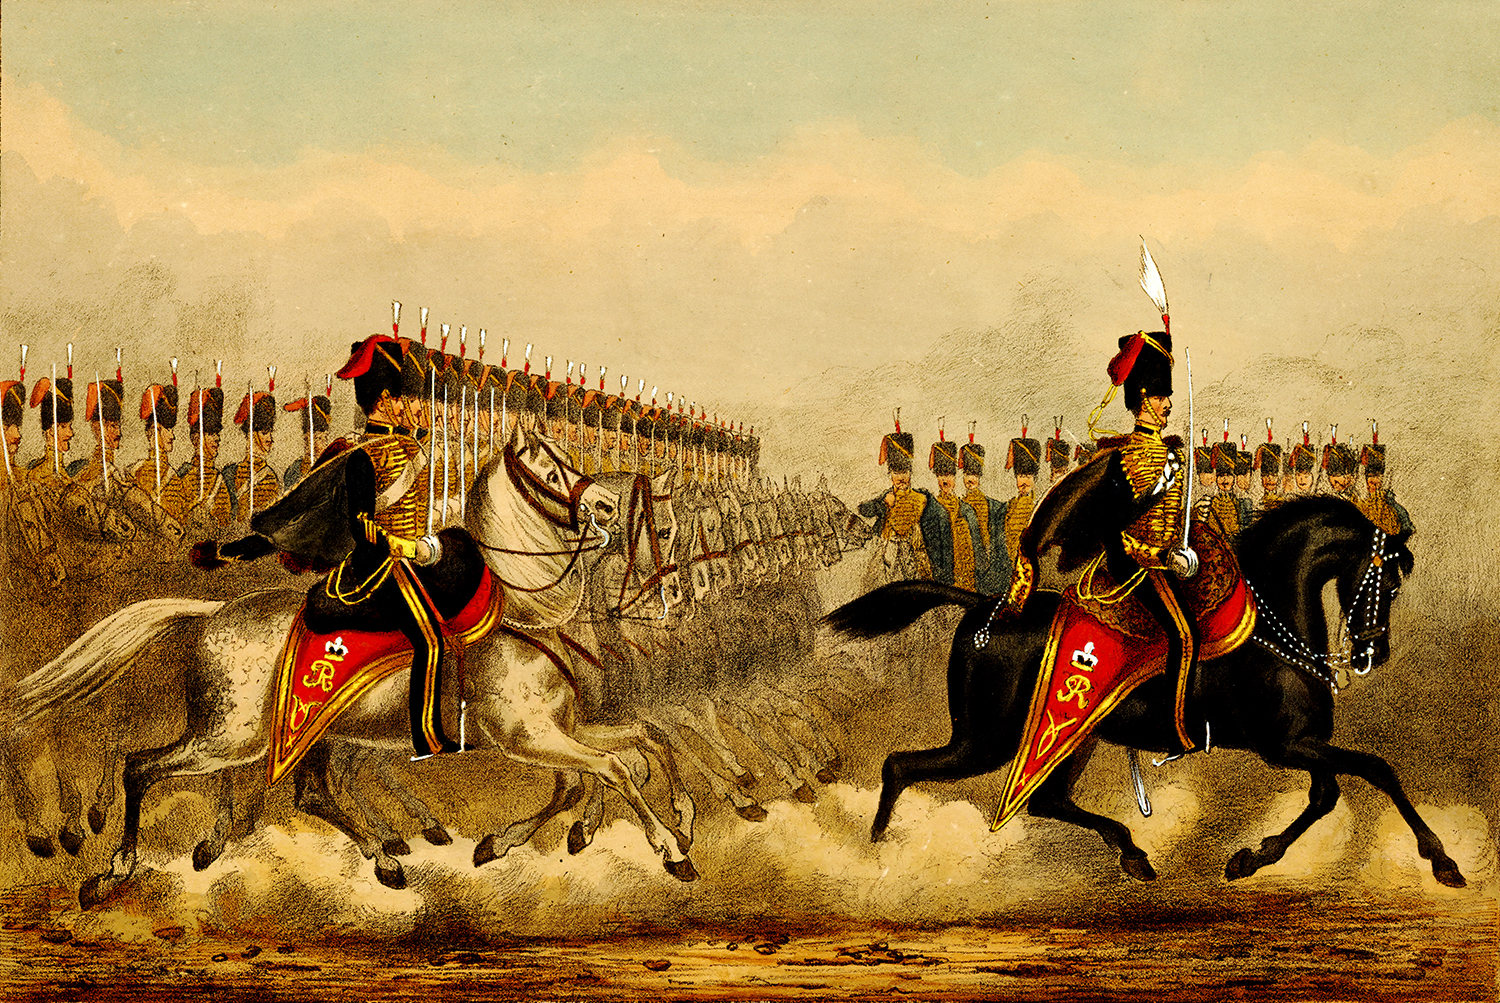 While the 10th Hussars were not part of the Light Brigade, this contemporary image shows Hussars parading with their Pattern 1821 Light Cavalry Swords drawn at the ready